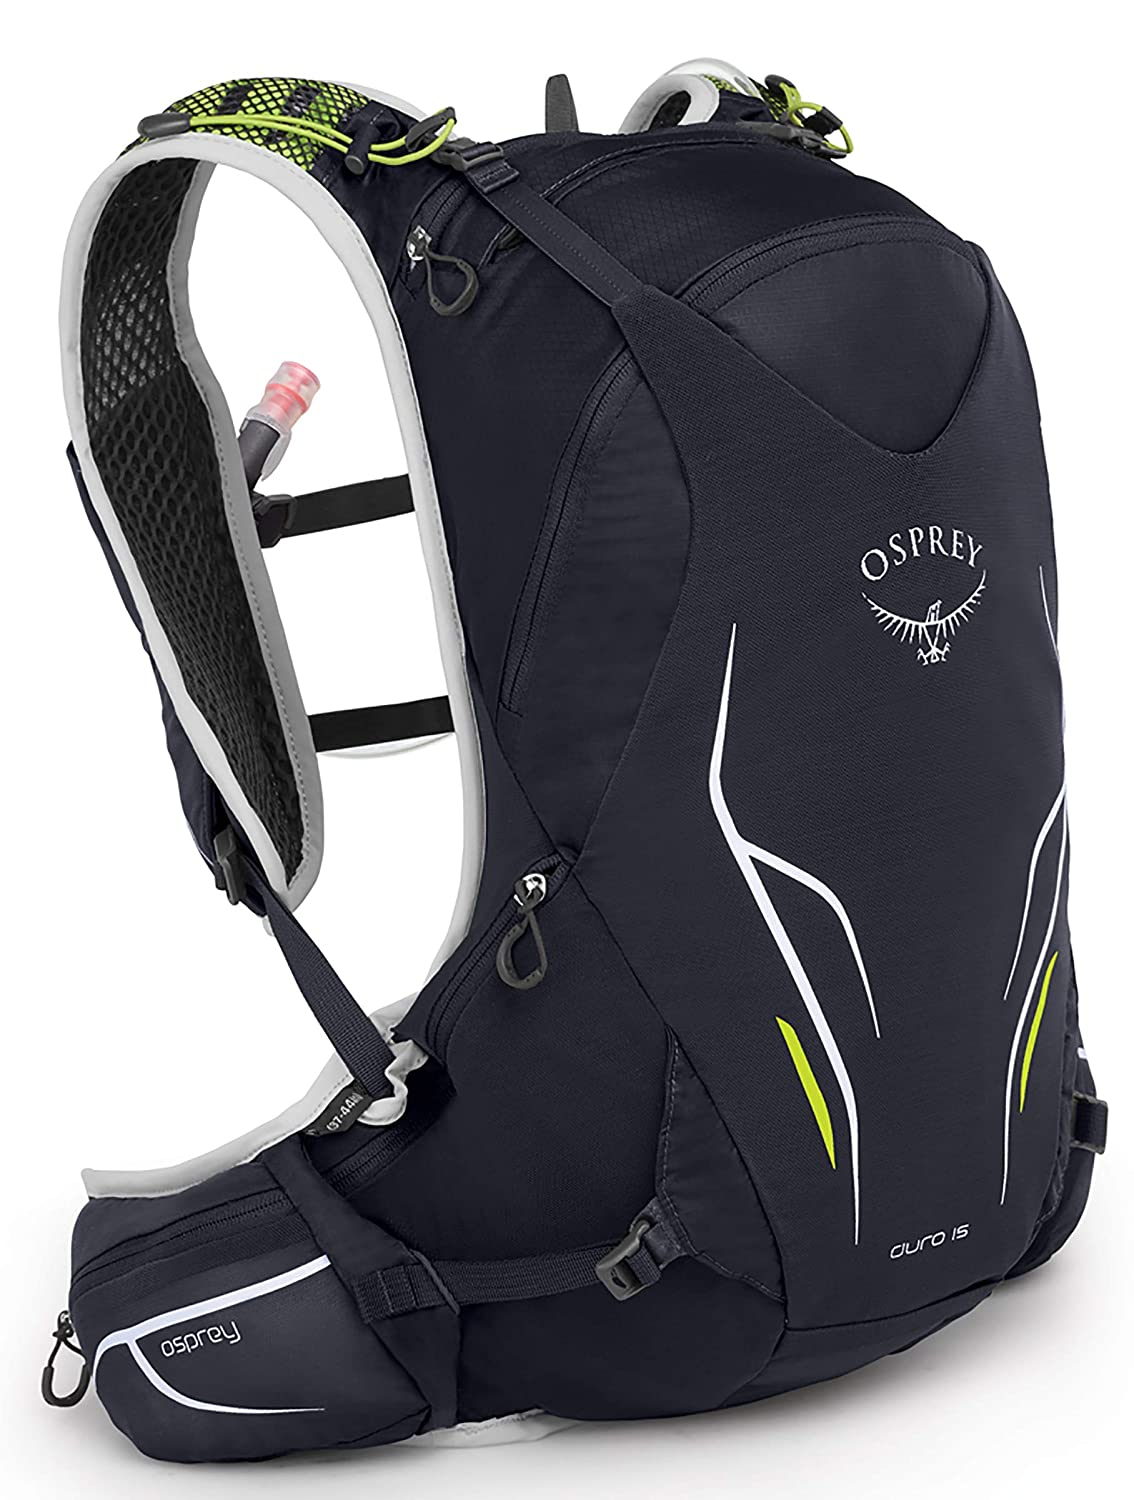 Osprey Packs Duro 15 Running Hydration Vest